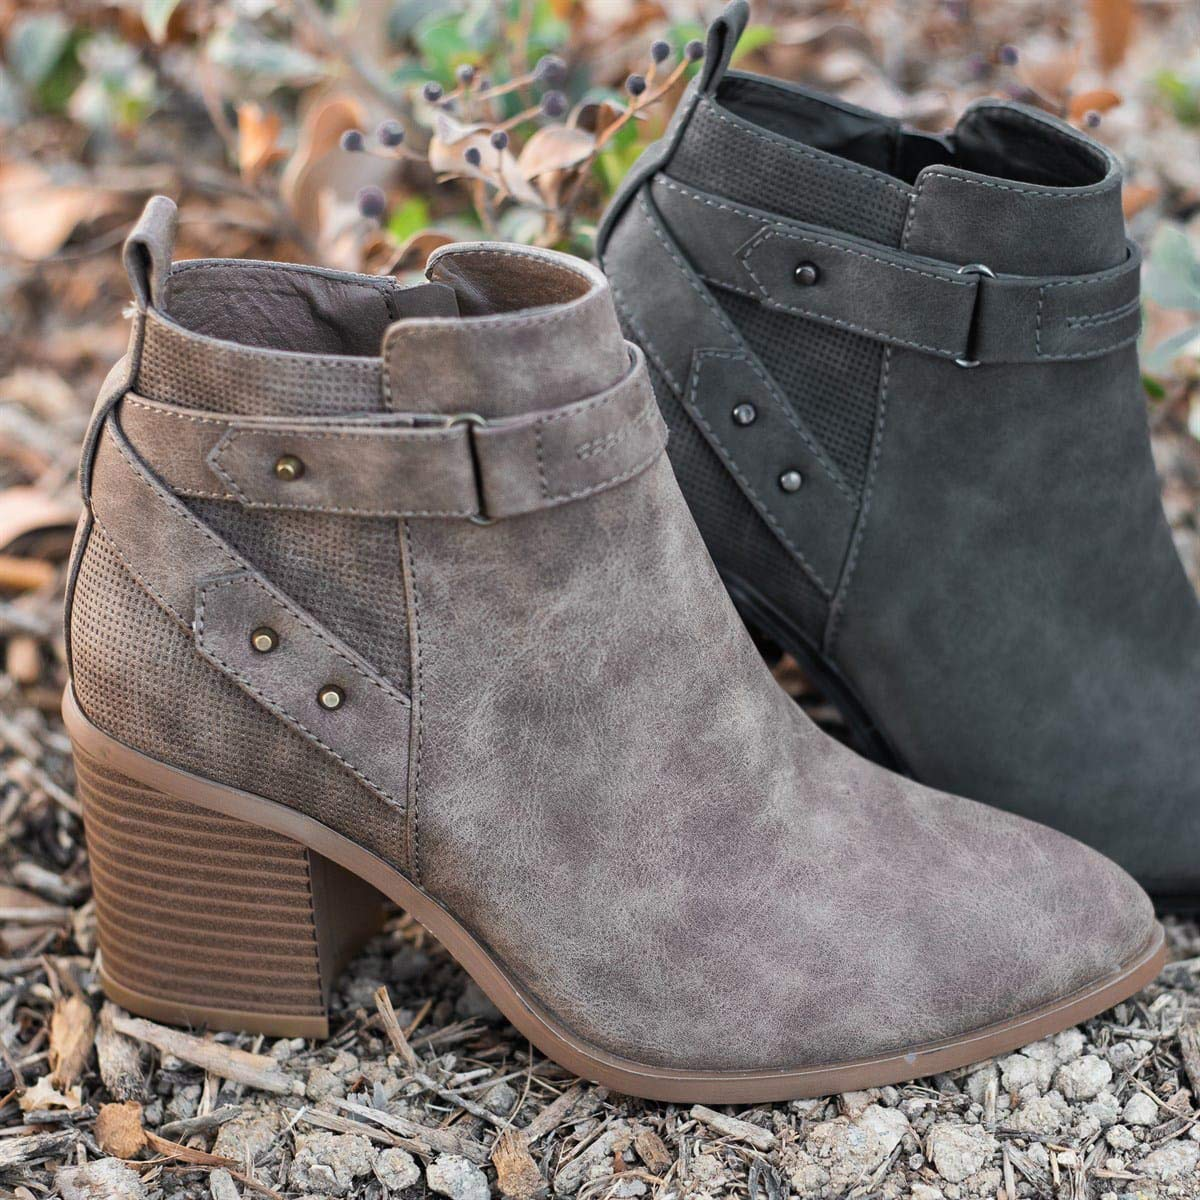 Naliyhome Womens Fall Winter Ankle Boots Buckle Strapped Booties Chunky High Heel